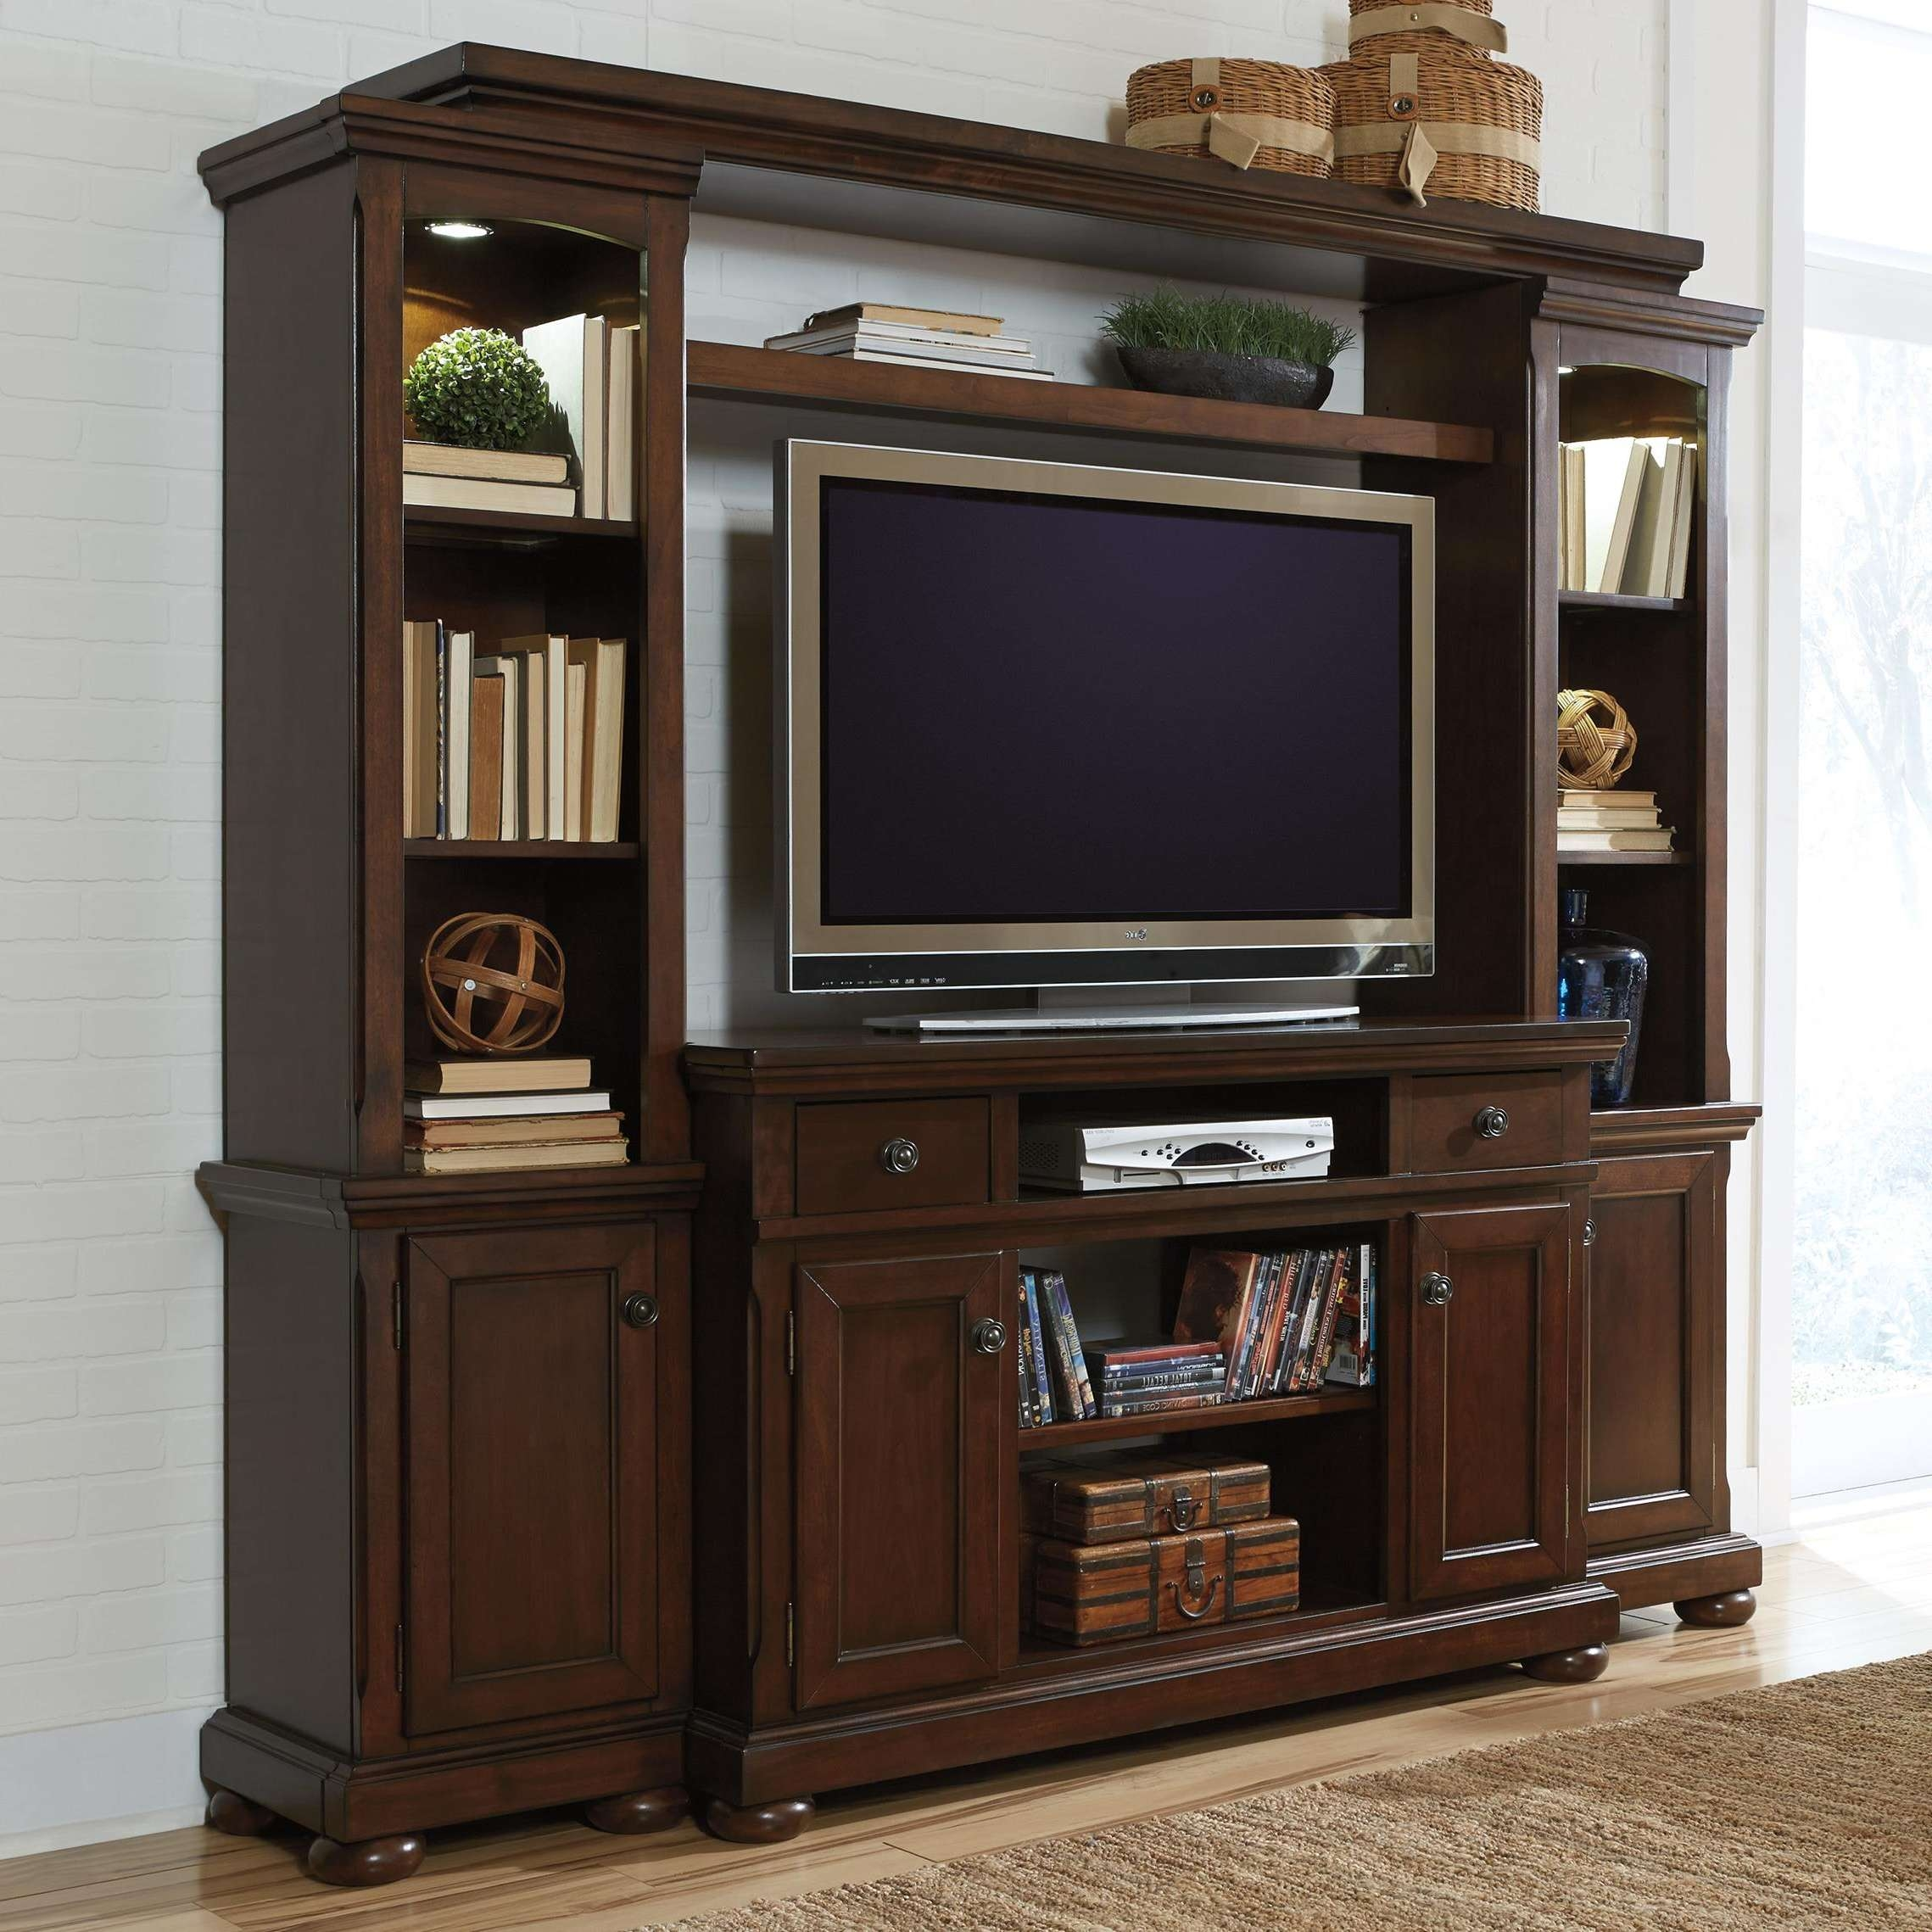 Porter Entertainment Wall Unit W/ Tv Stand, Bridge, And Piers Within Large Tv Cabinets (View 15 of 20)